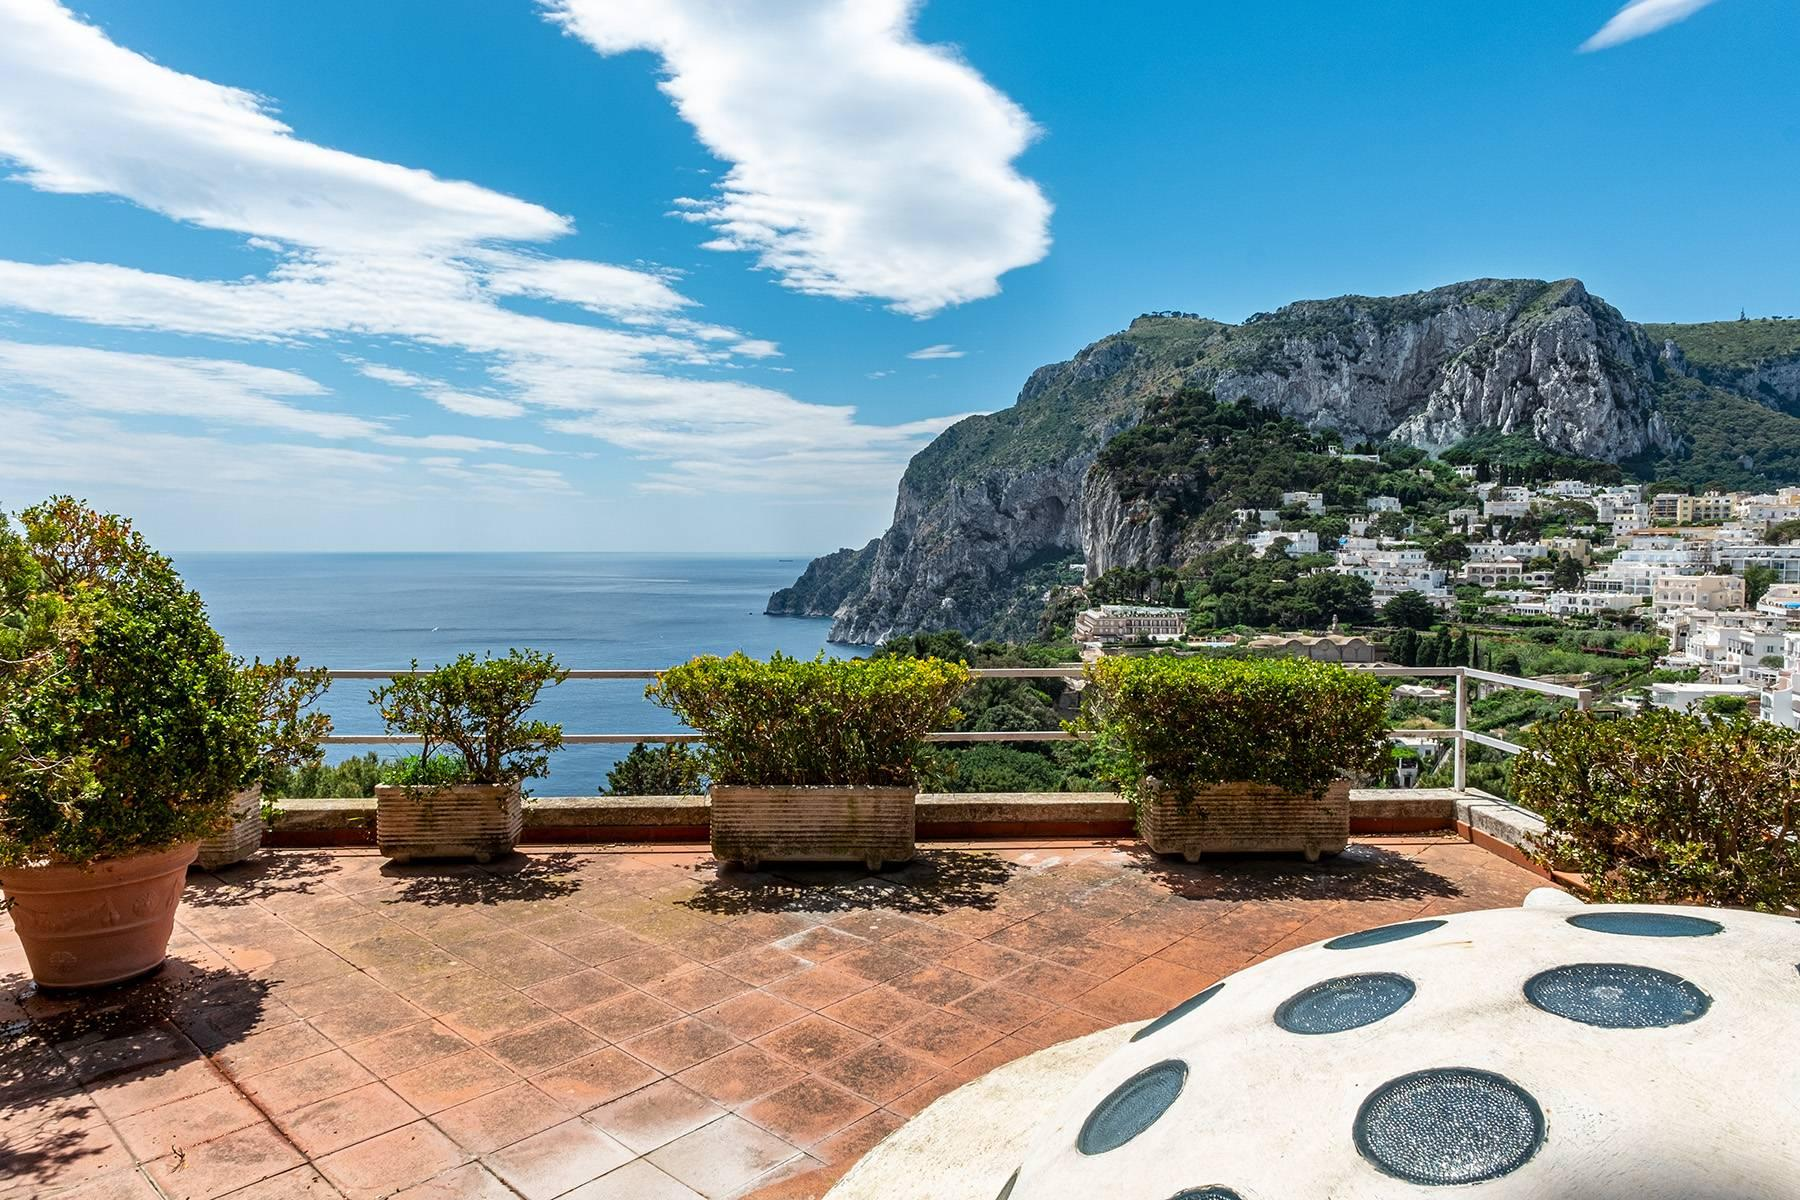 Magnificent villa in the center of Capri overlooking the sea - 16